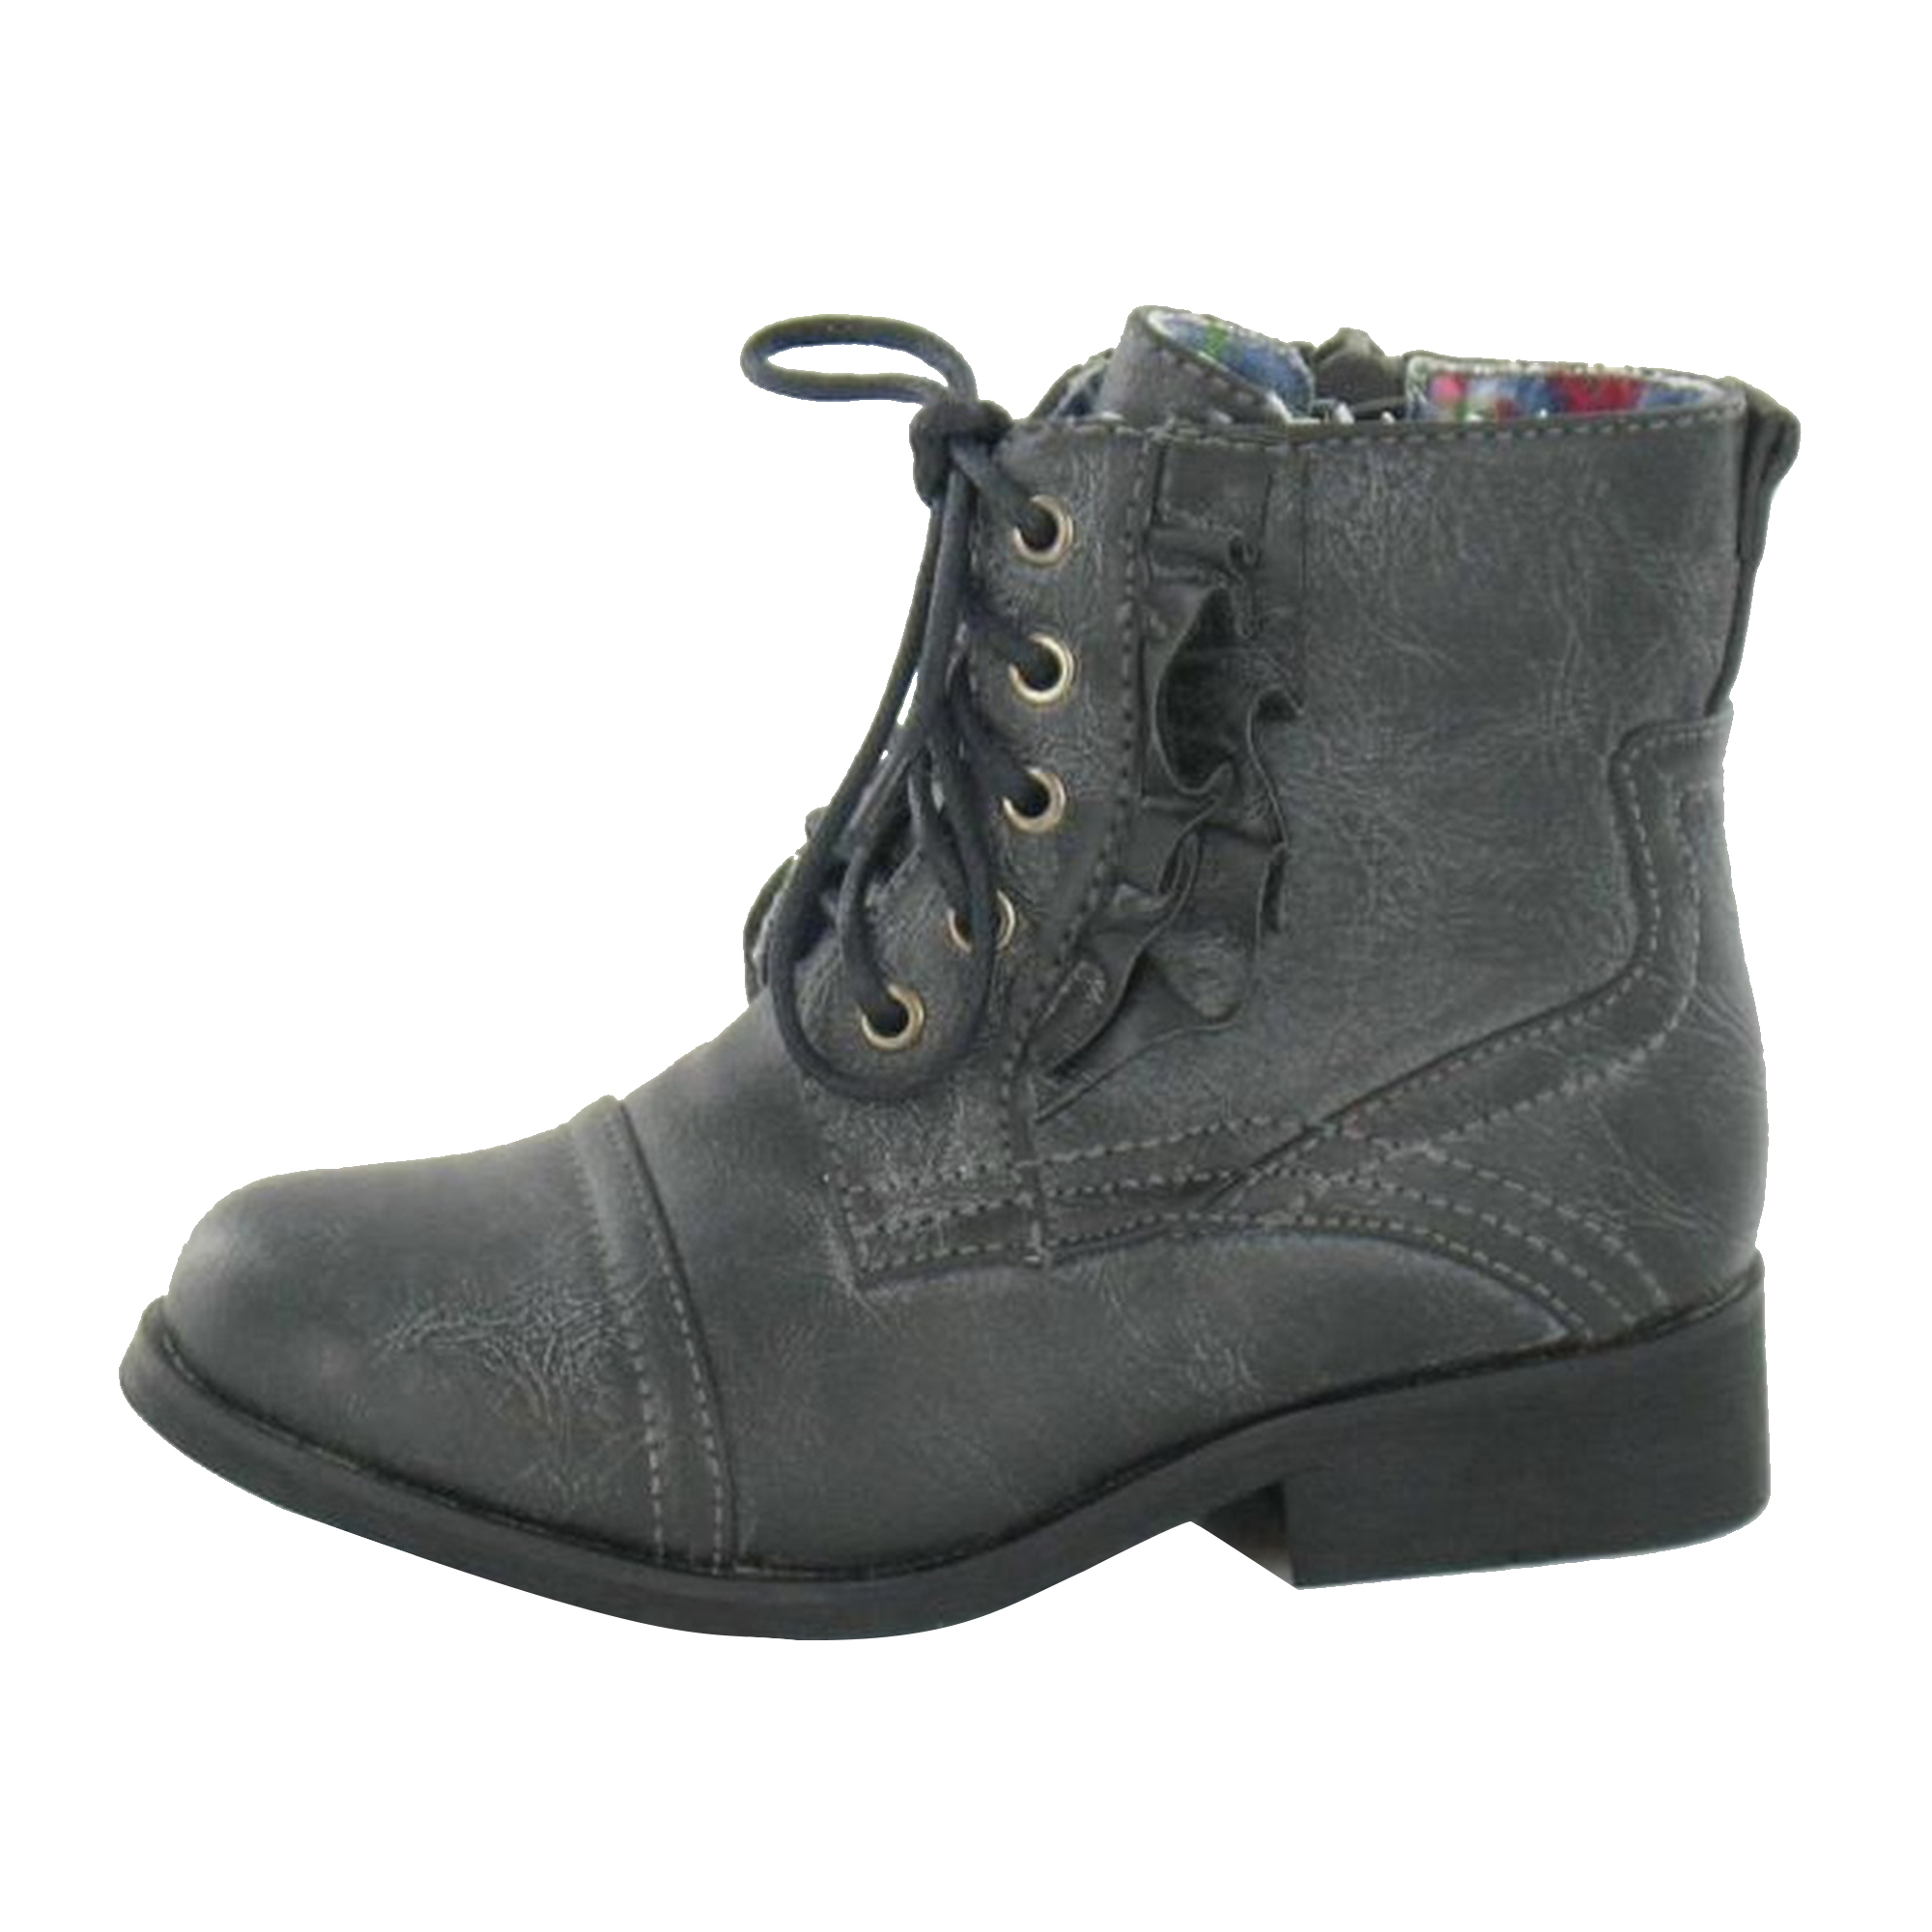 Cutie-Childrens-Girls-Flat-Lace-Up-Boots-KM587